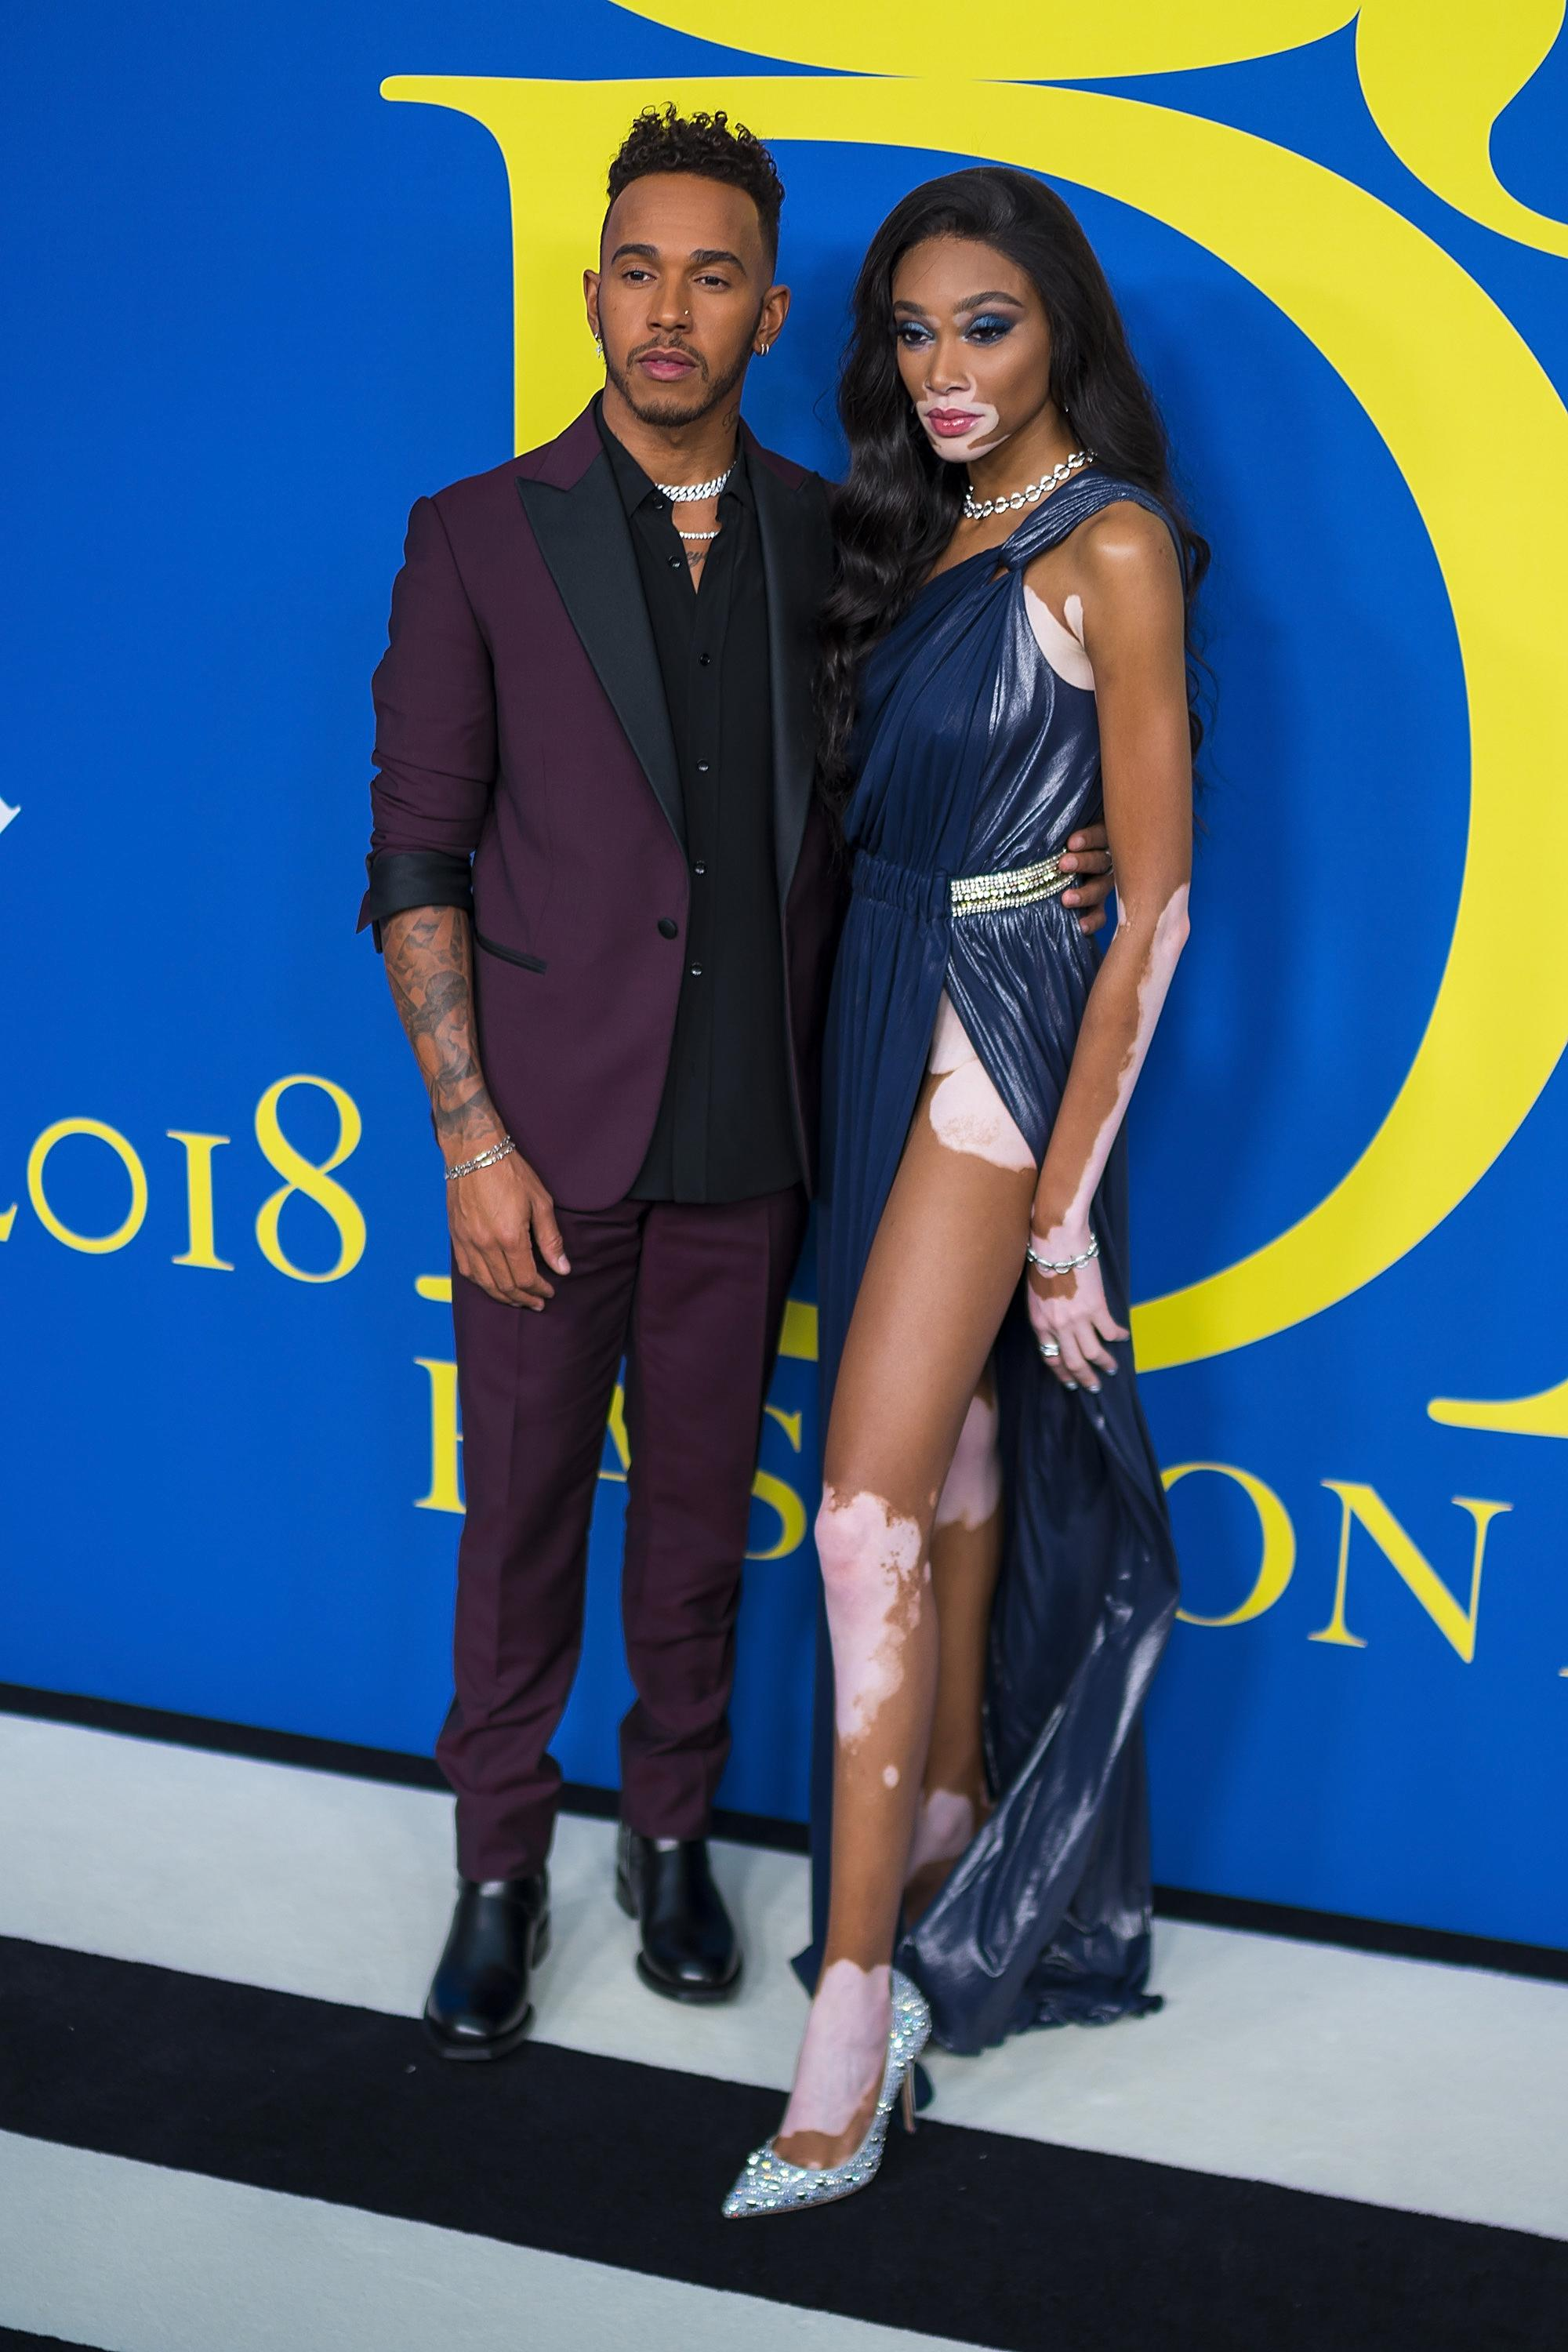 Lewis Hamilton with Winnie Harlow at the 2018 Fashion Awards